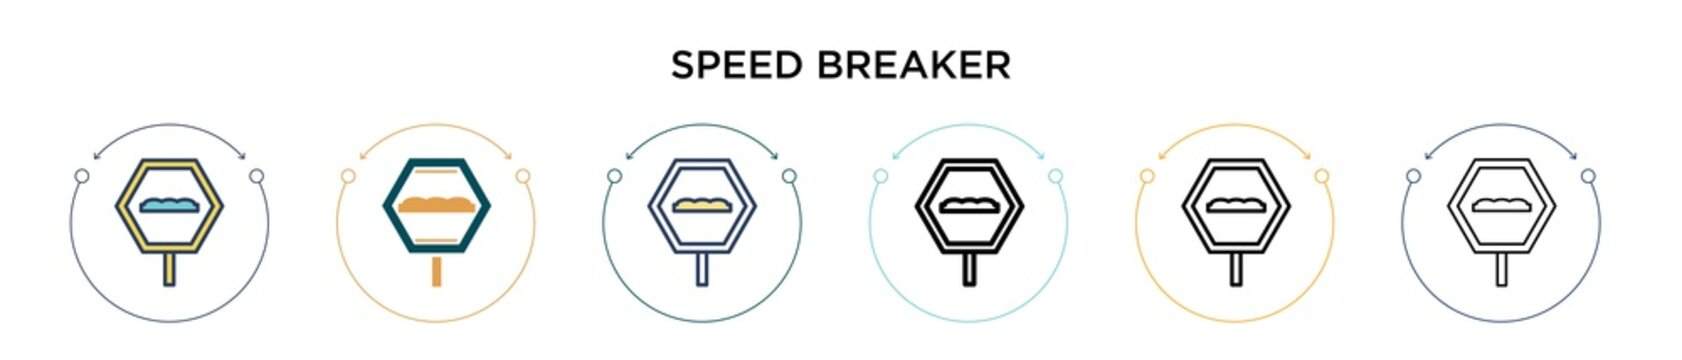 Speed breaker sign icon in filled, thin line, outline and stroke style. Vector illustration of two colored and black speed breaker sign vector icons designs can be used for mobile, ui, web